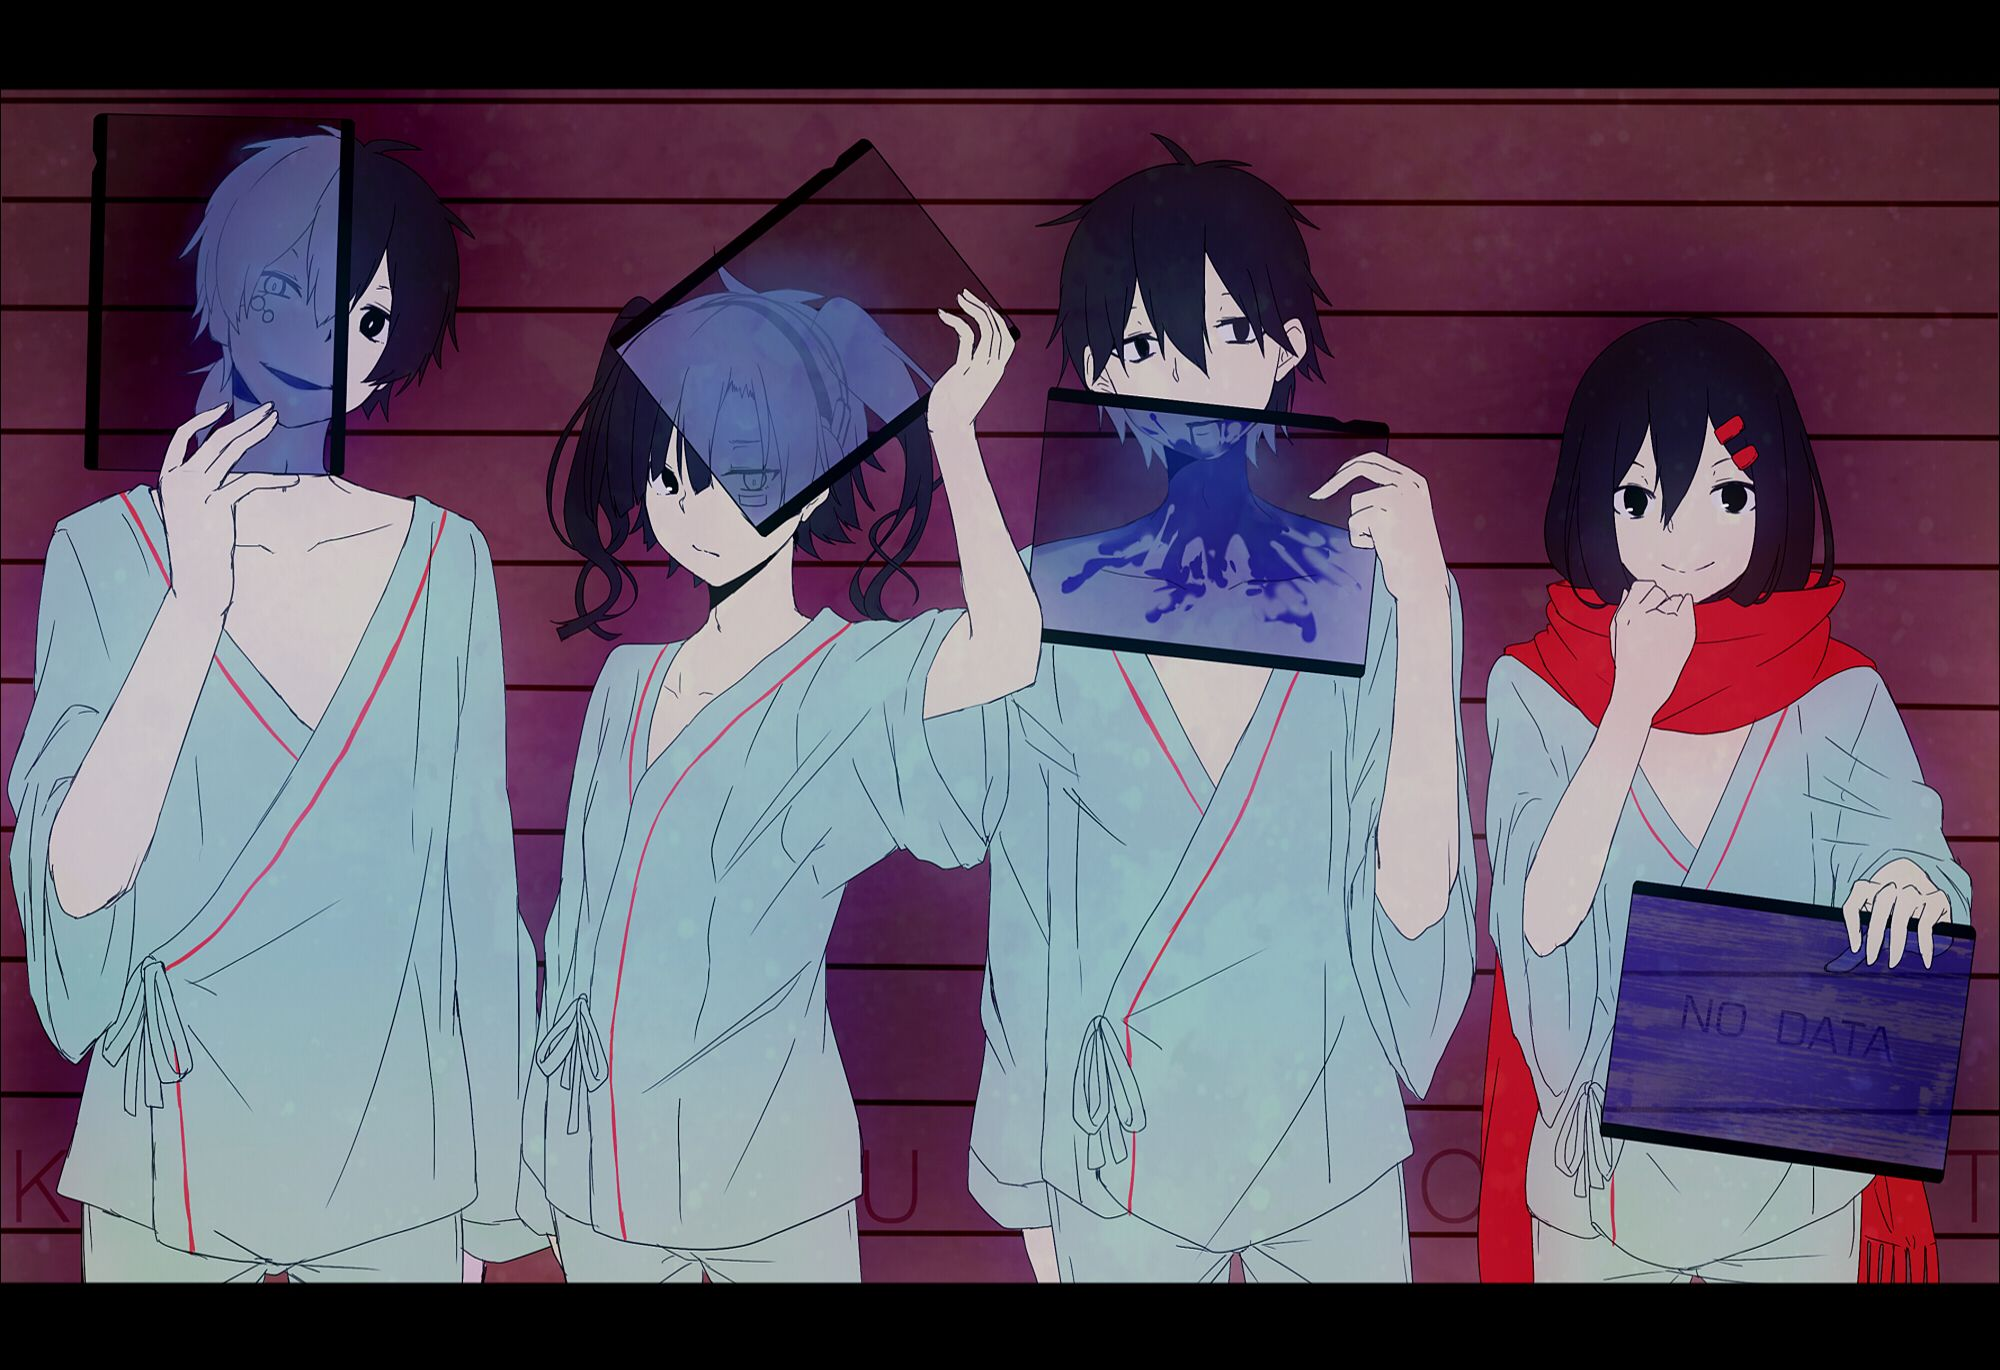 Kagerou Project Computer Wallpapers Desktop Backgrounds 2000x1370 Id 673577 Anime Kagerou Project Awesome Anime